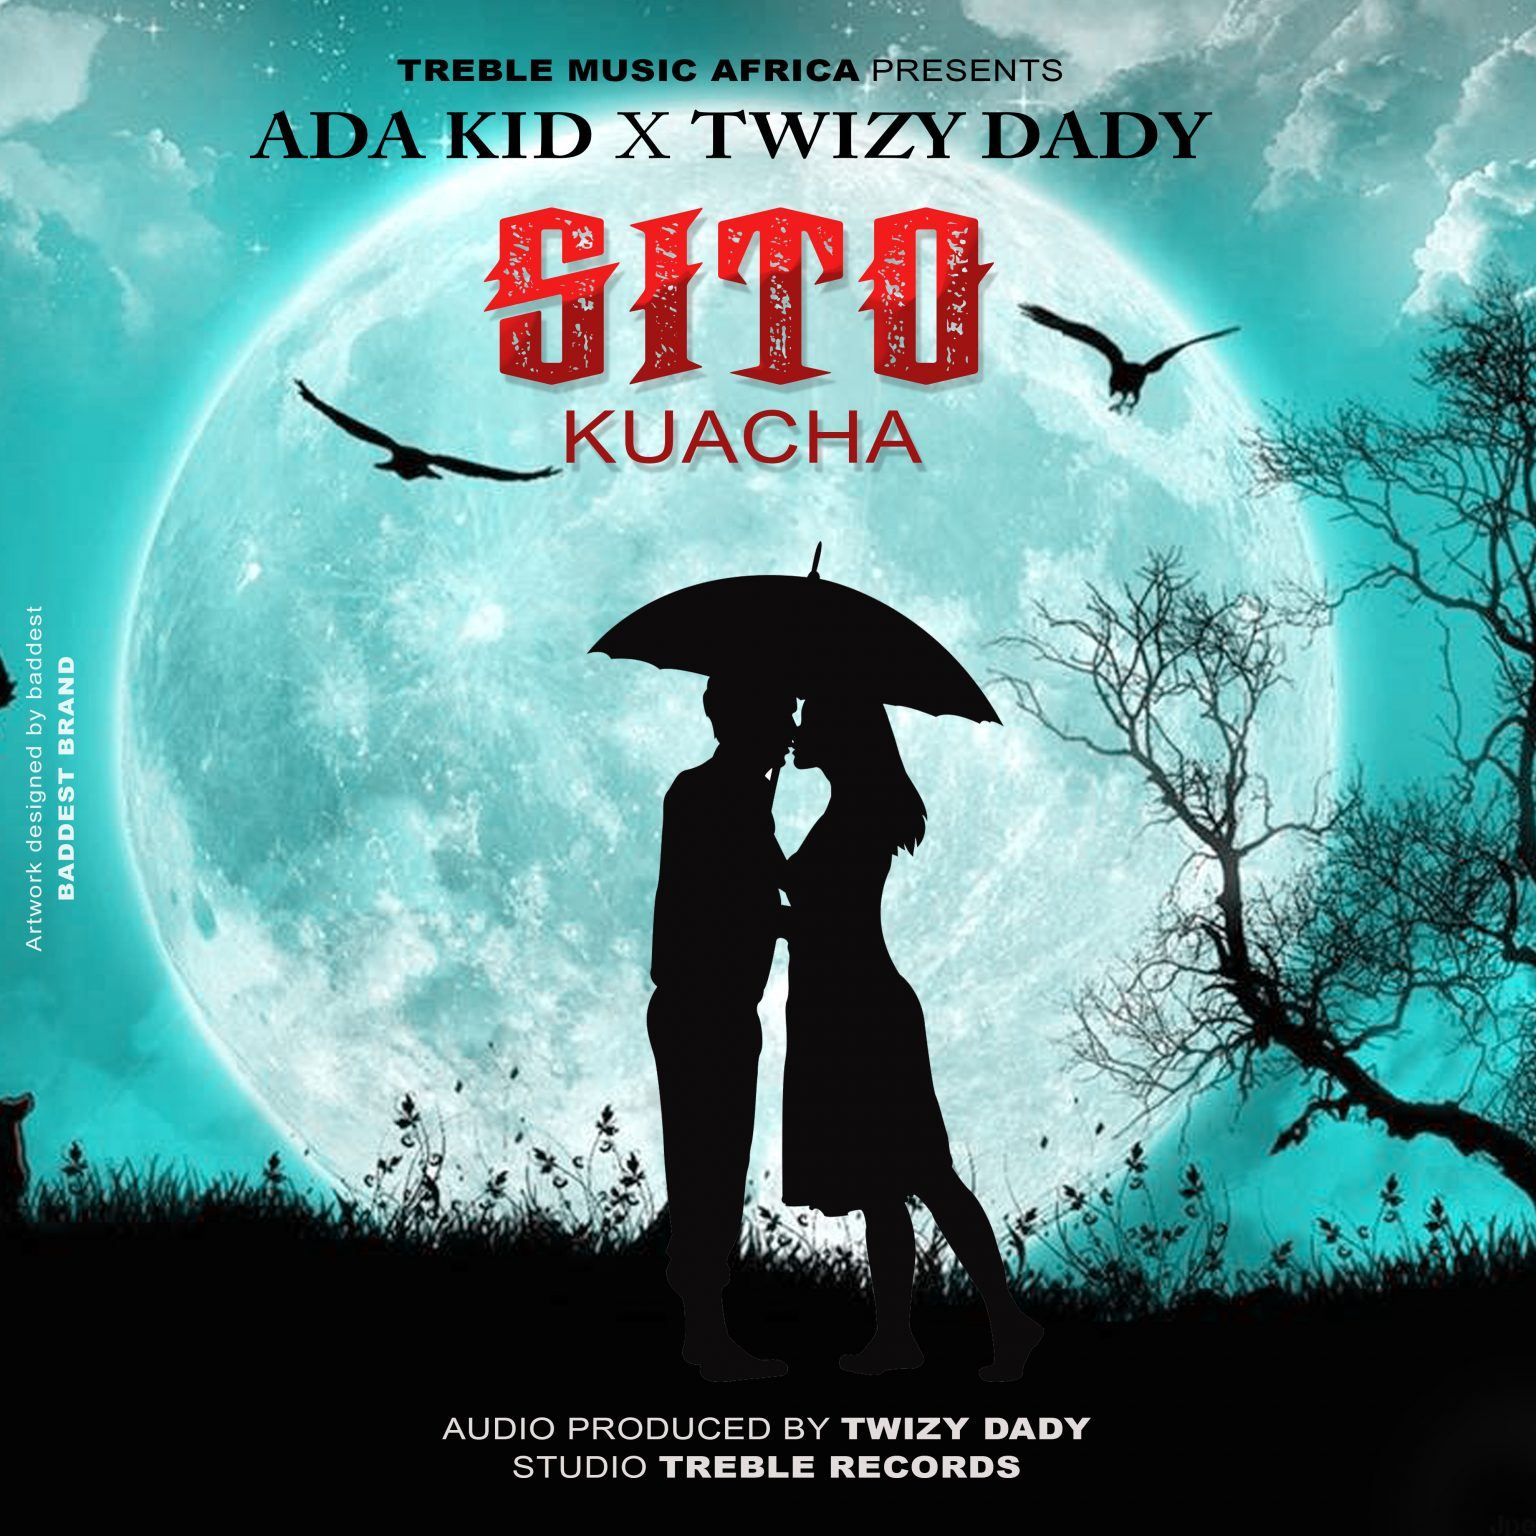 Photo of Ada Kidy X Twizy Dady – Sitokuacha